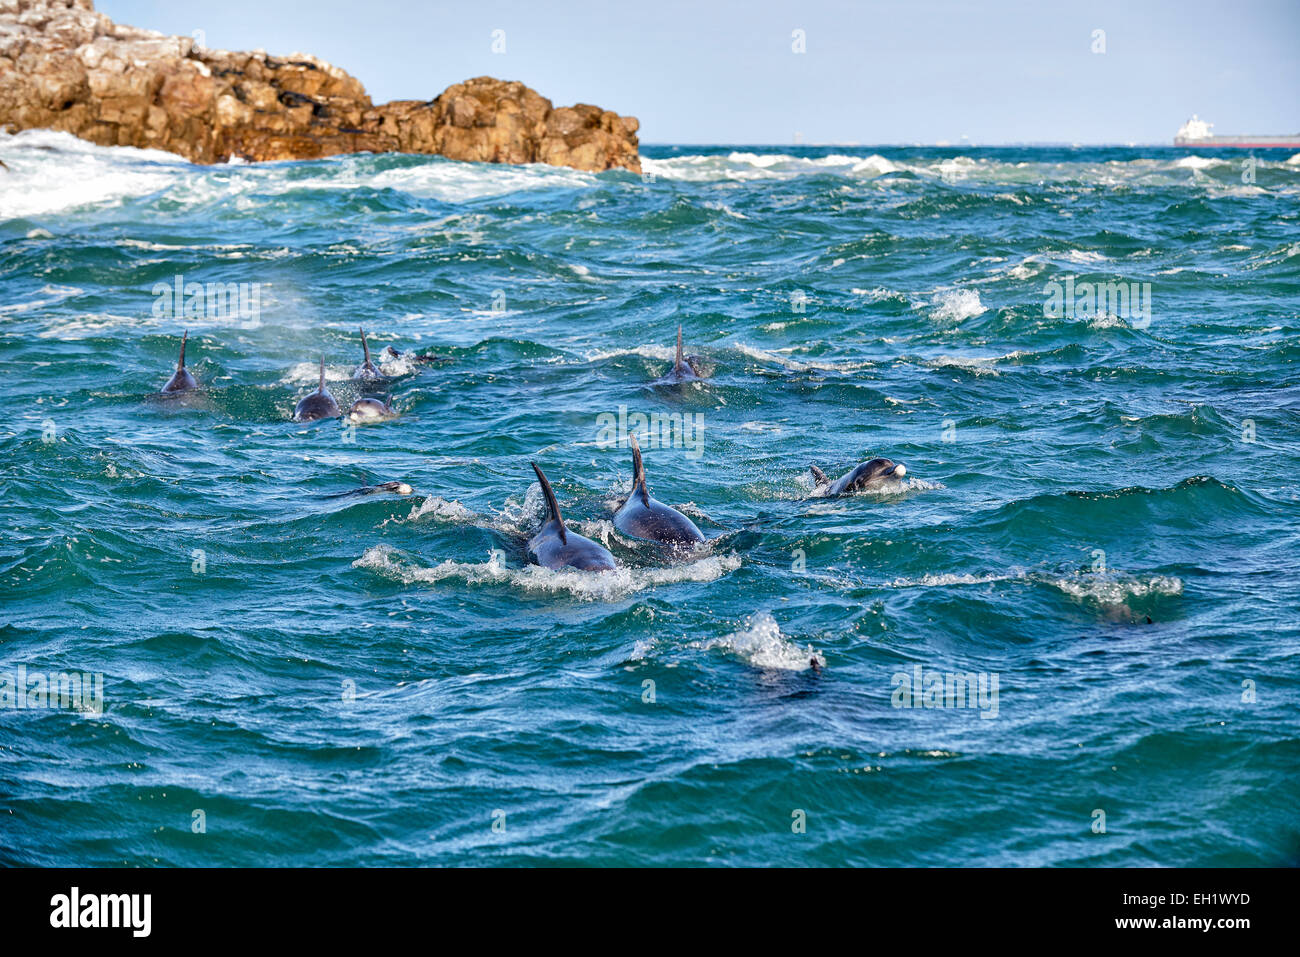 herd of hunting bottlenose dolphin (Tursiops truncatus), Eastern Cape, South Africa - Stock Image